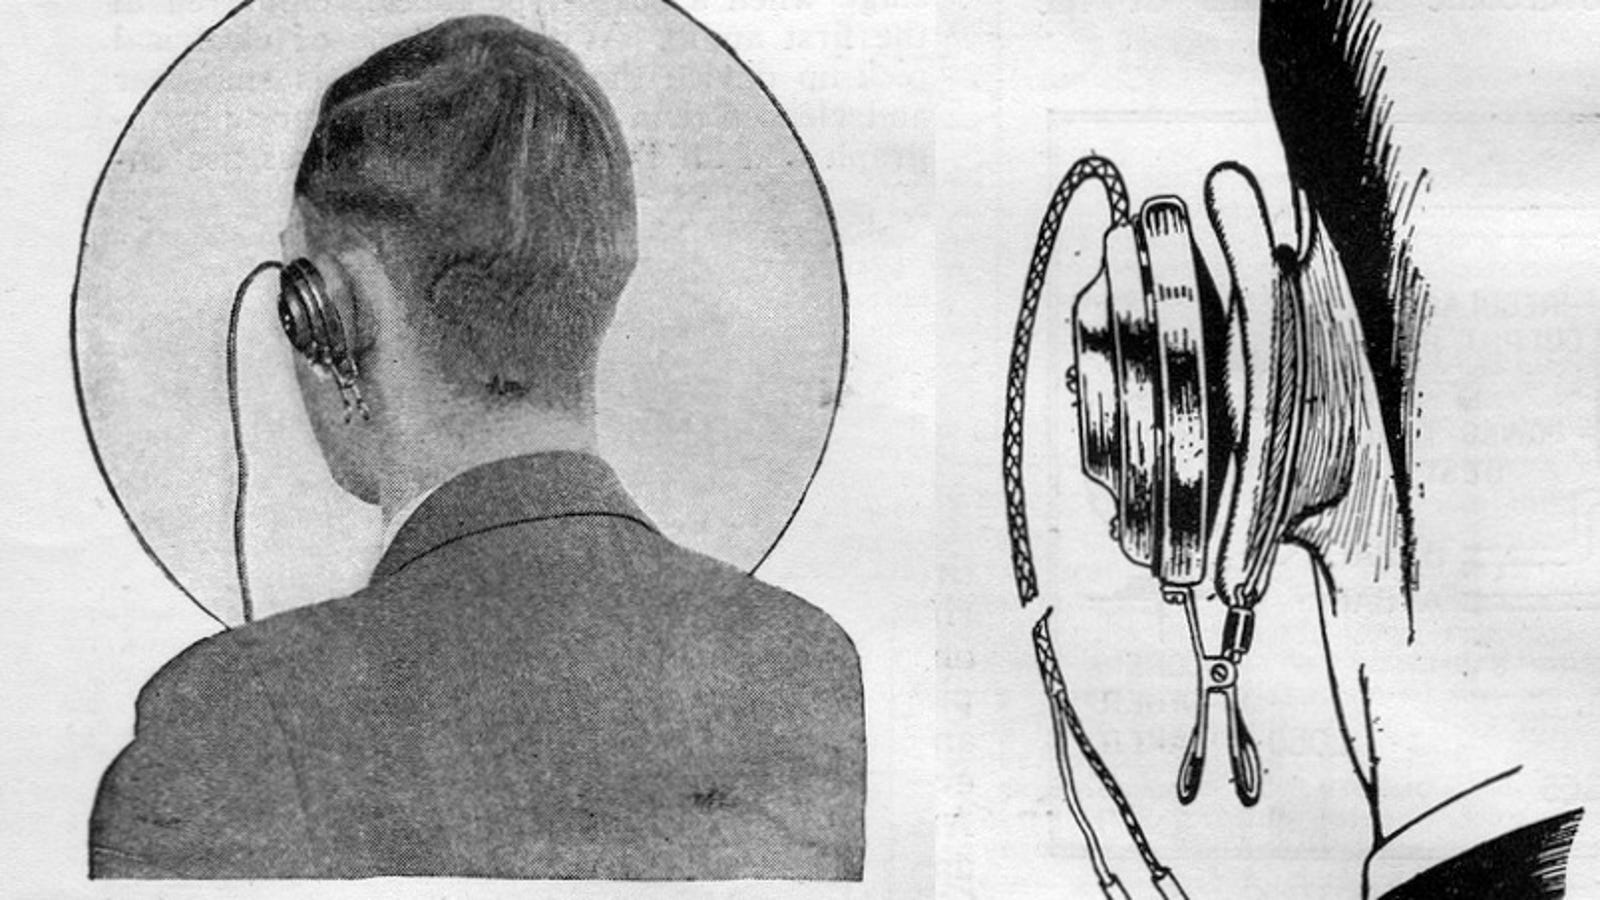 iphone 6s headphones wireless - These Headphones From 1927 Look So Much Worse Than Earbuds